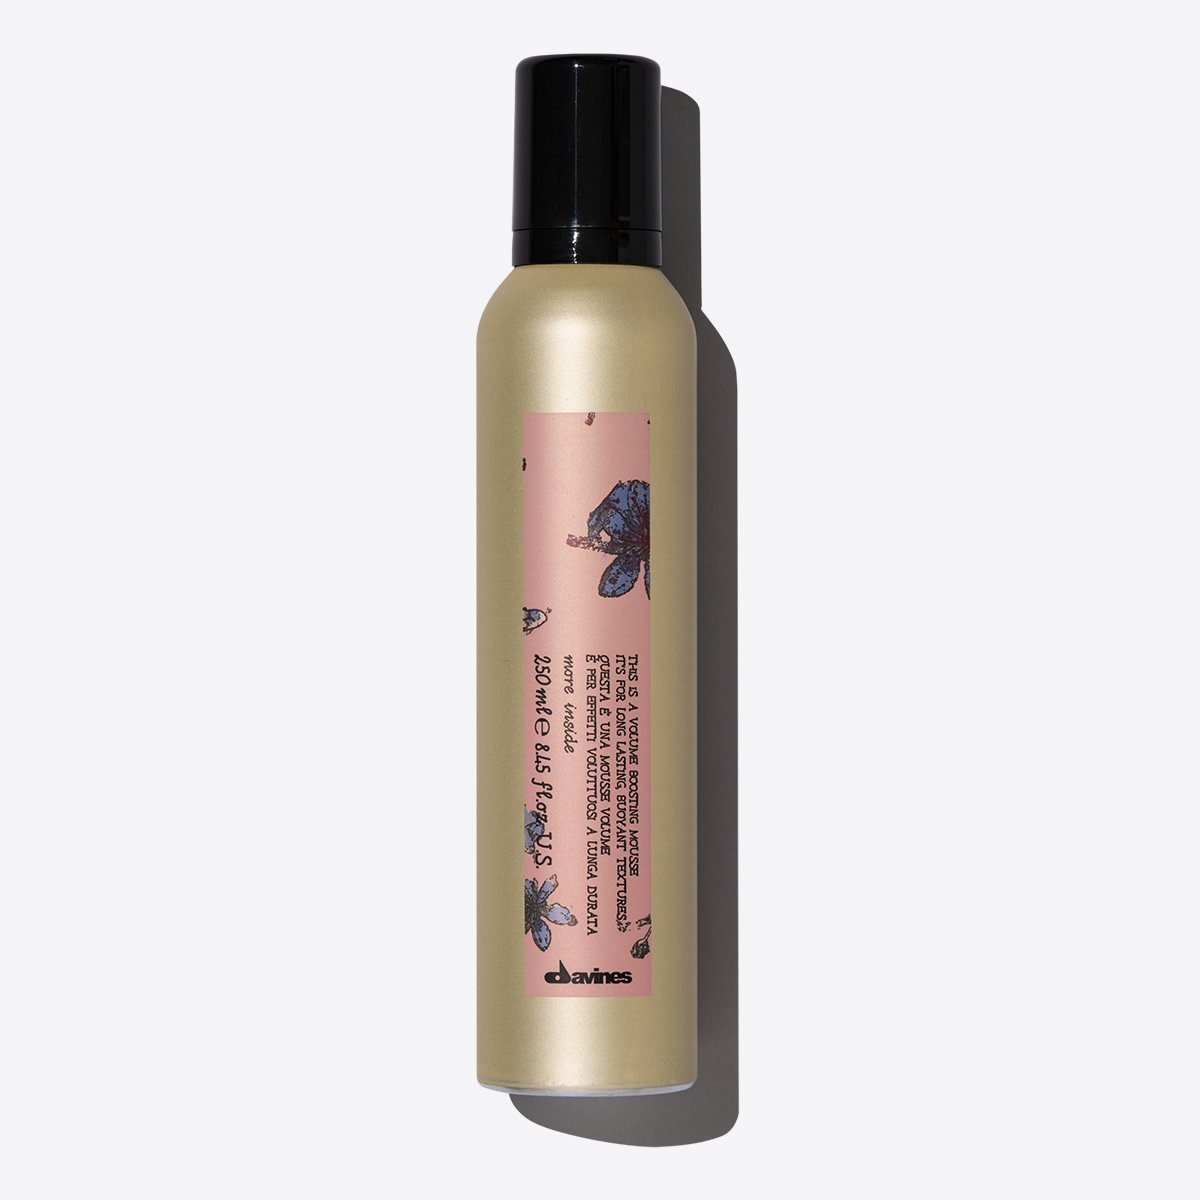 This is a Volume Boosting Mousse by Davines